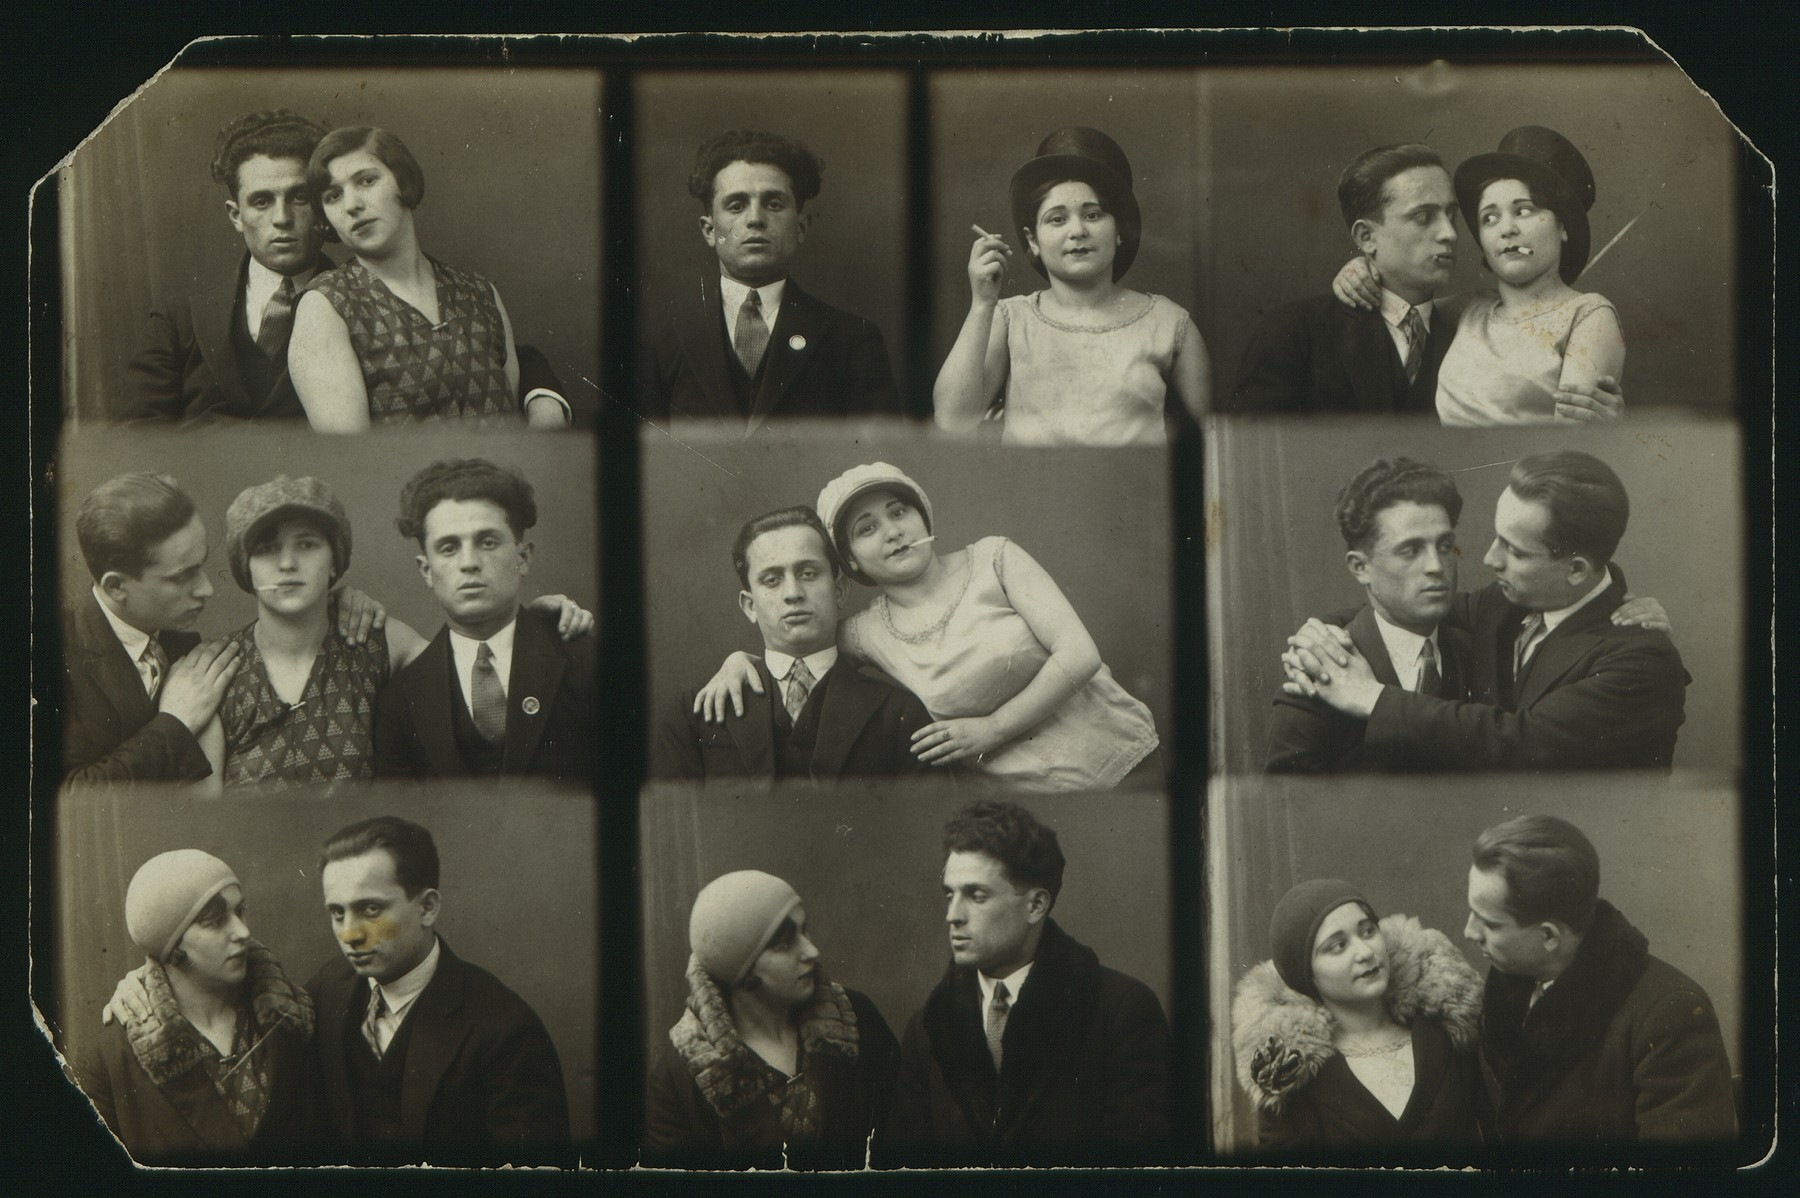 Composite photo of Jewish friends in humorous poses.   The two men are Michael Portnoy and Avraham Jurdyczanski.  The woman was a friend from Vilna.  Only Michael Portnoy survived.